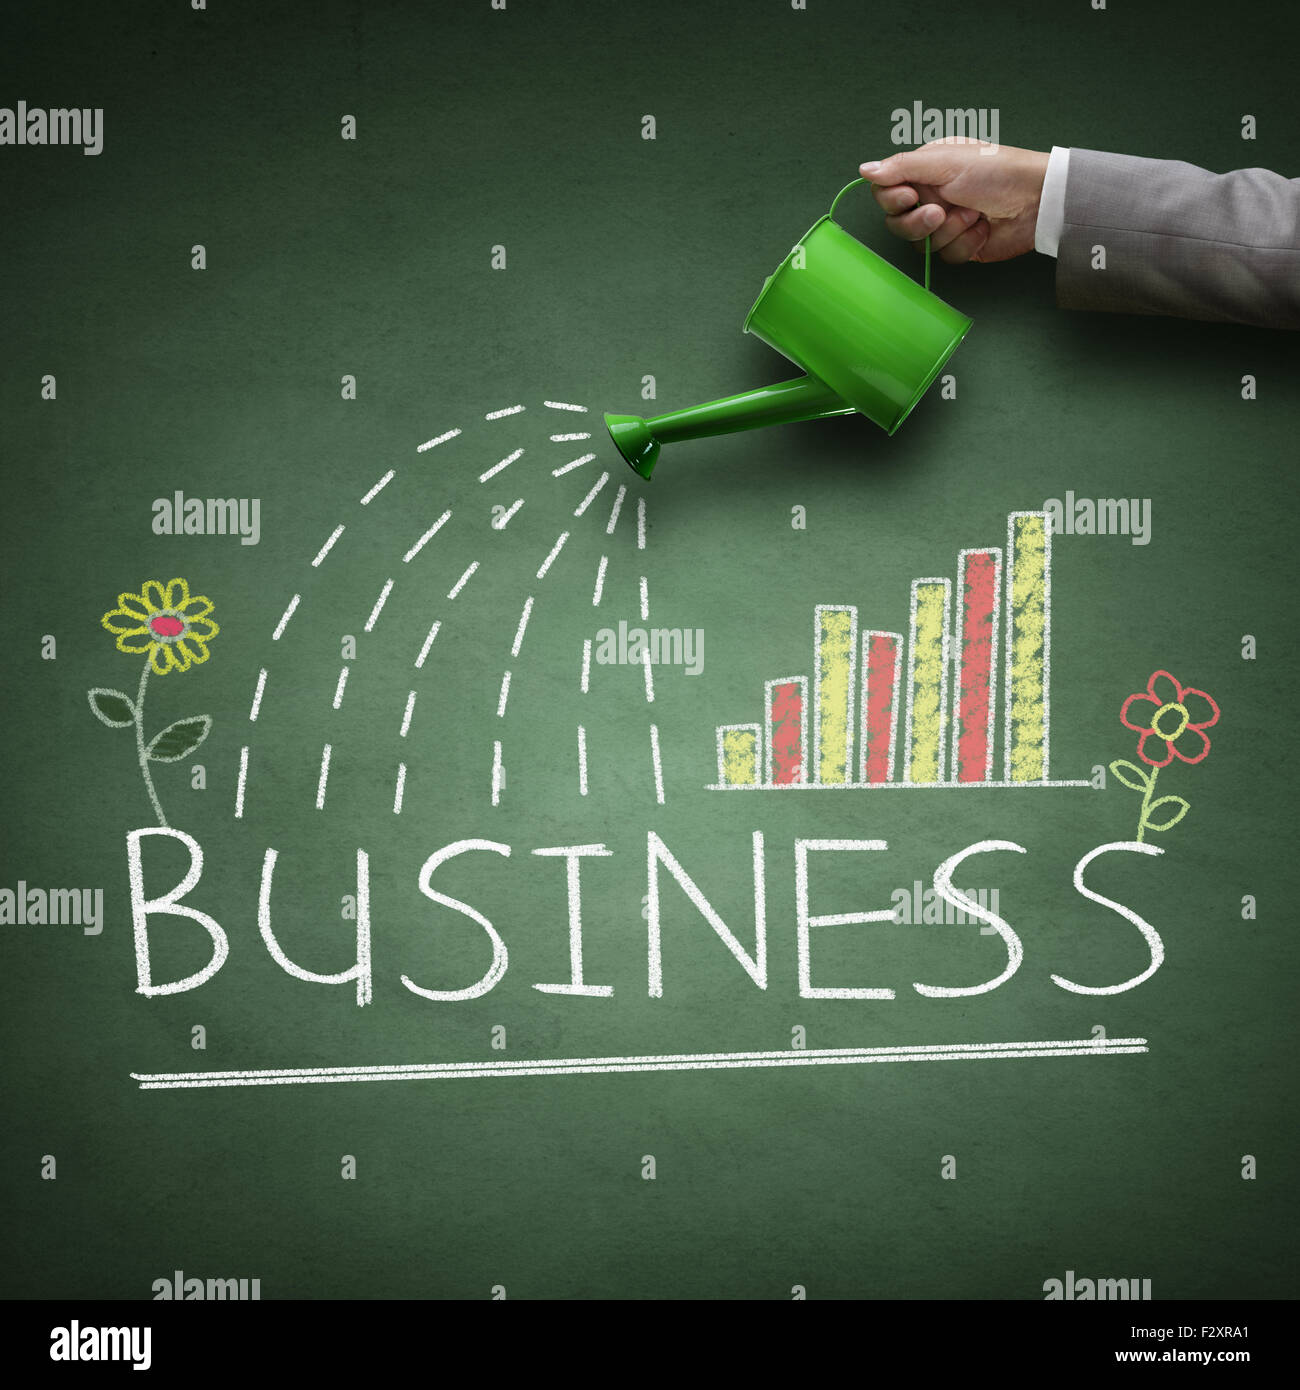 Watering can and word business drawn on a blackboard concept for business growth, investment, savings and making - Stock Image